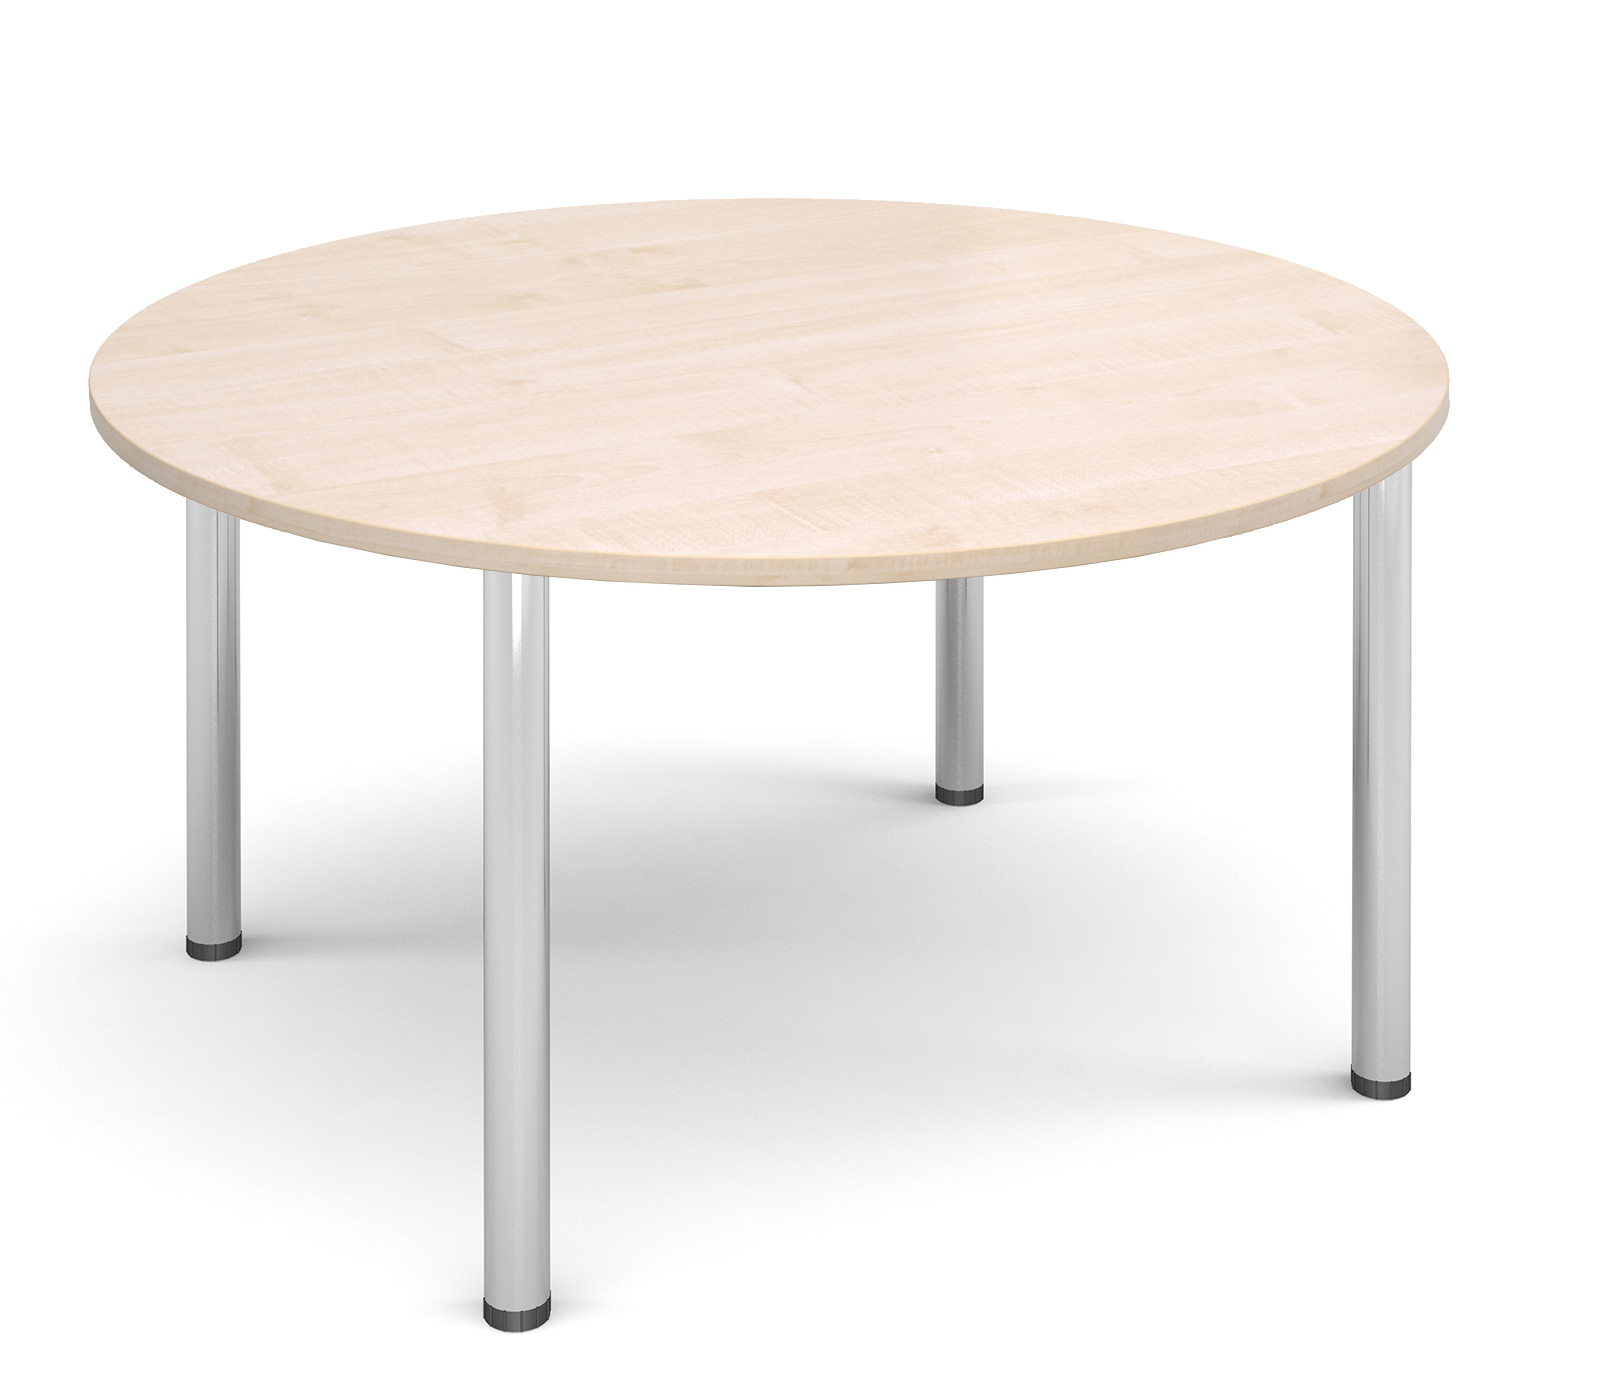 1200mm diameter Top + Chrome radial Legs - Maple